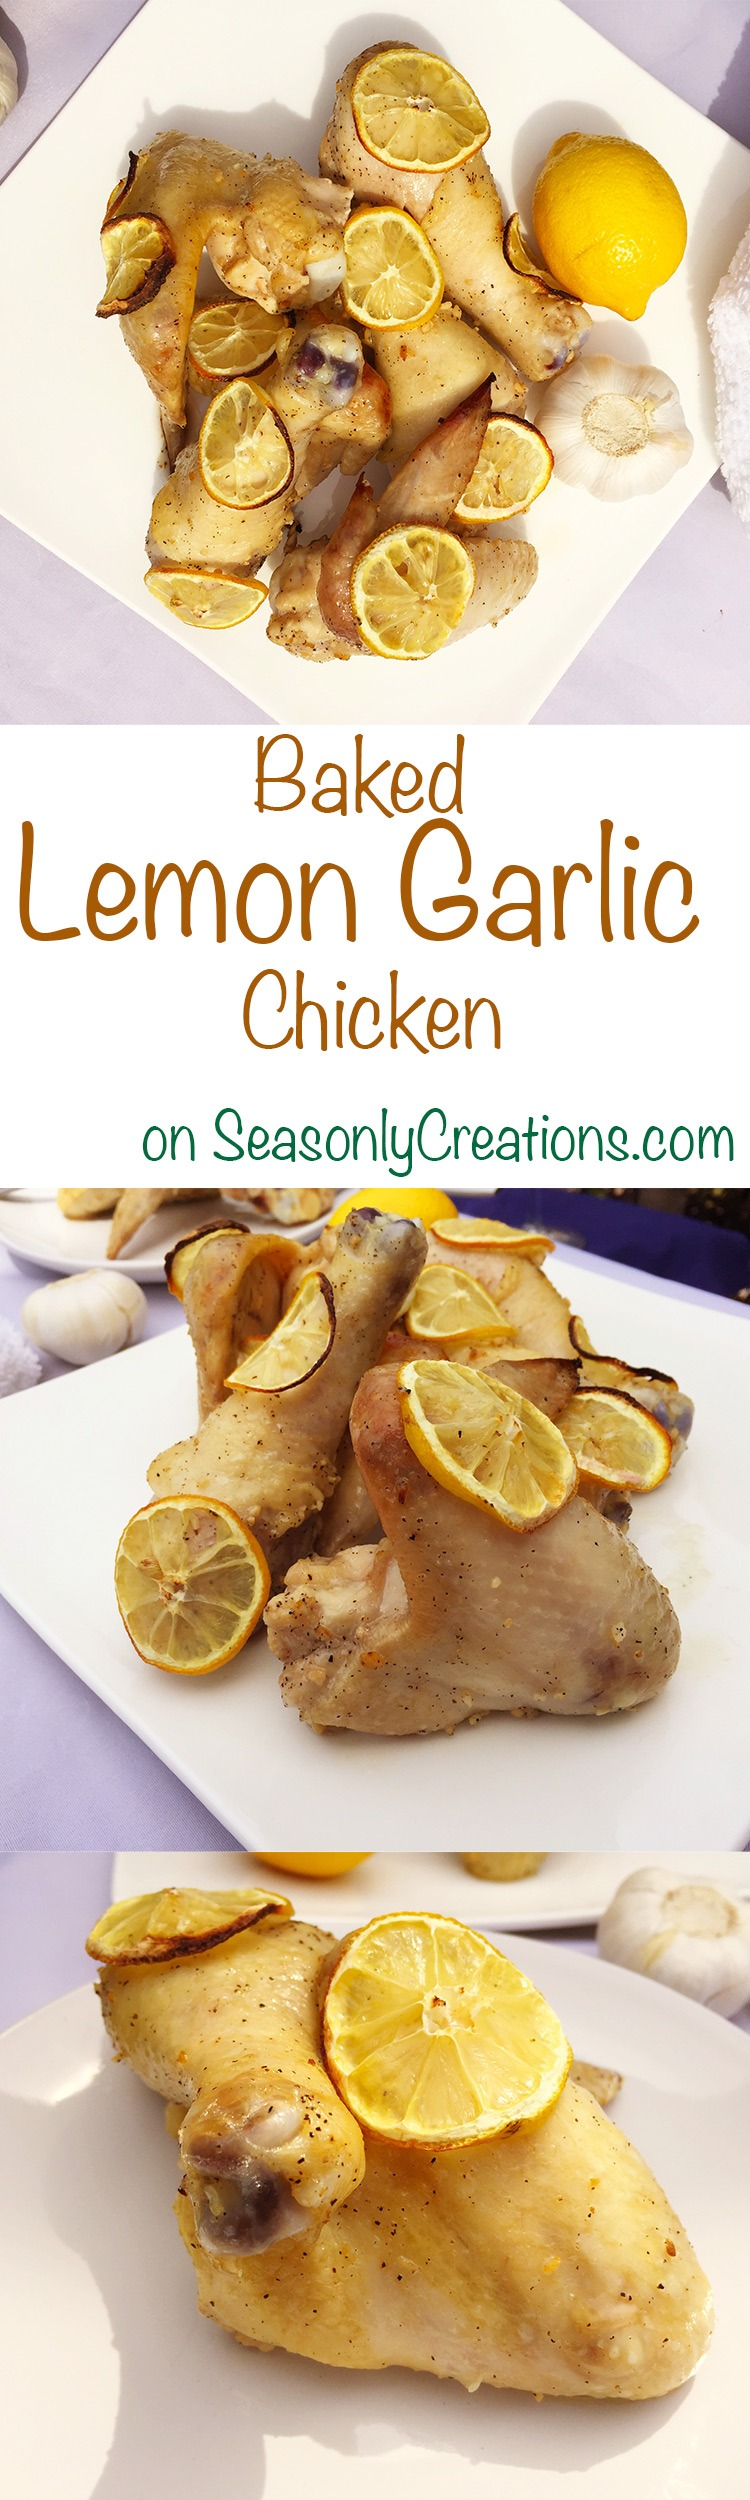 how to make baked lemon olive oil chicken